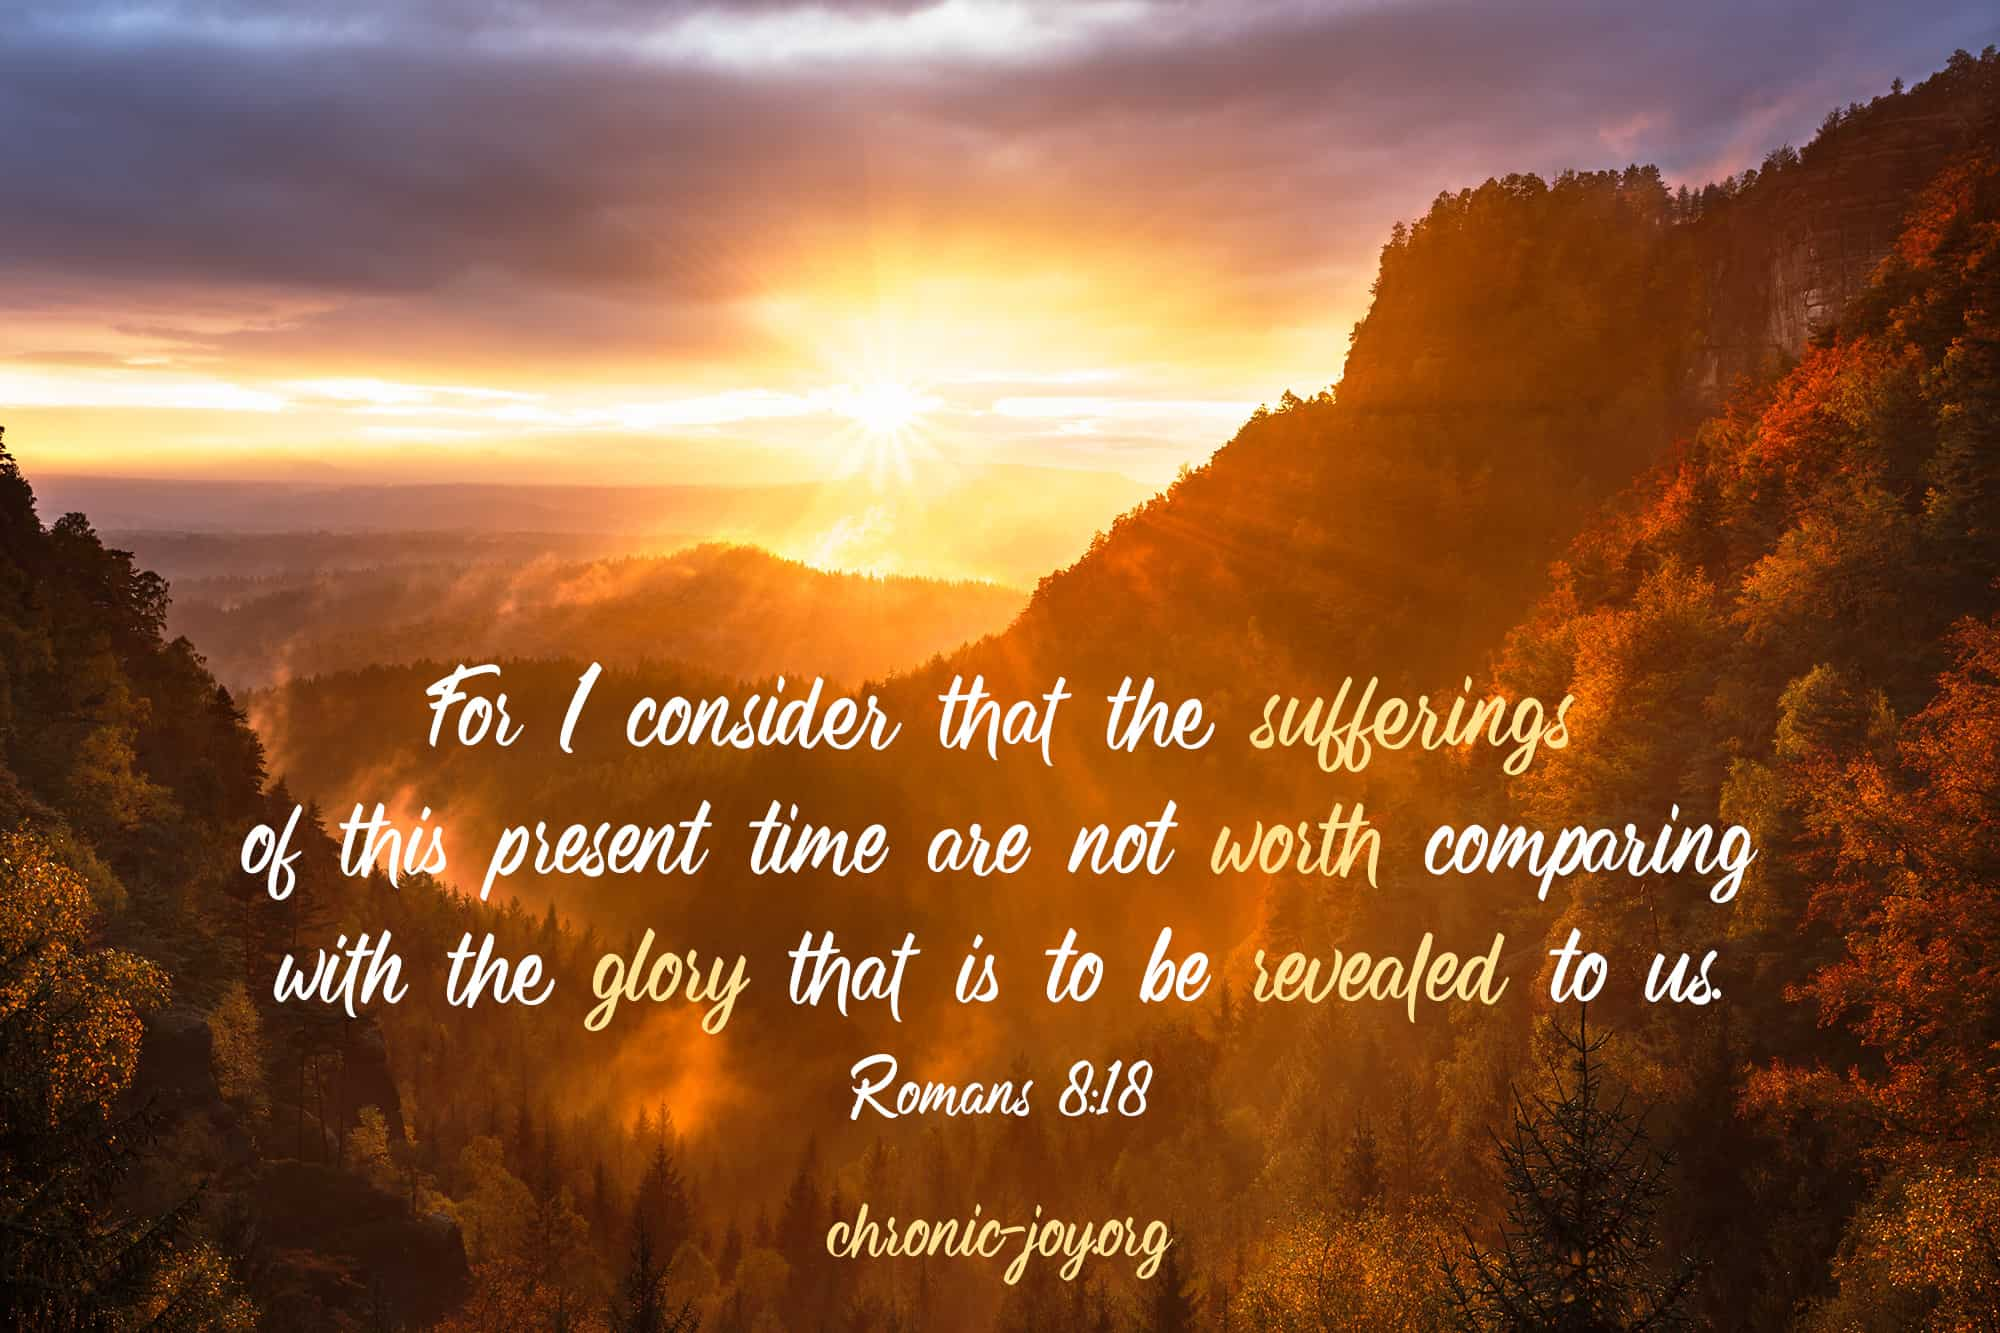 the sufferings of this present time are not worth comparing with the glory